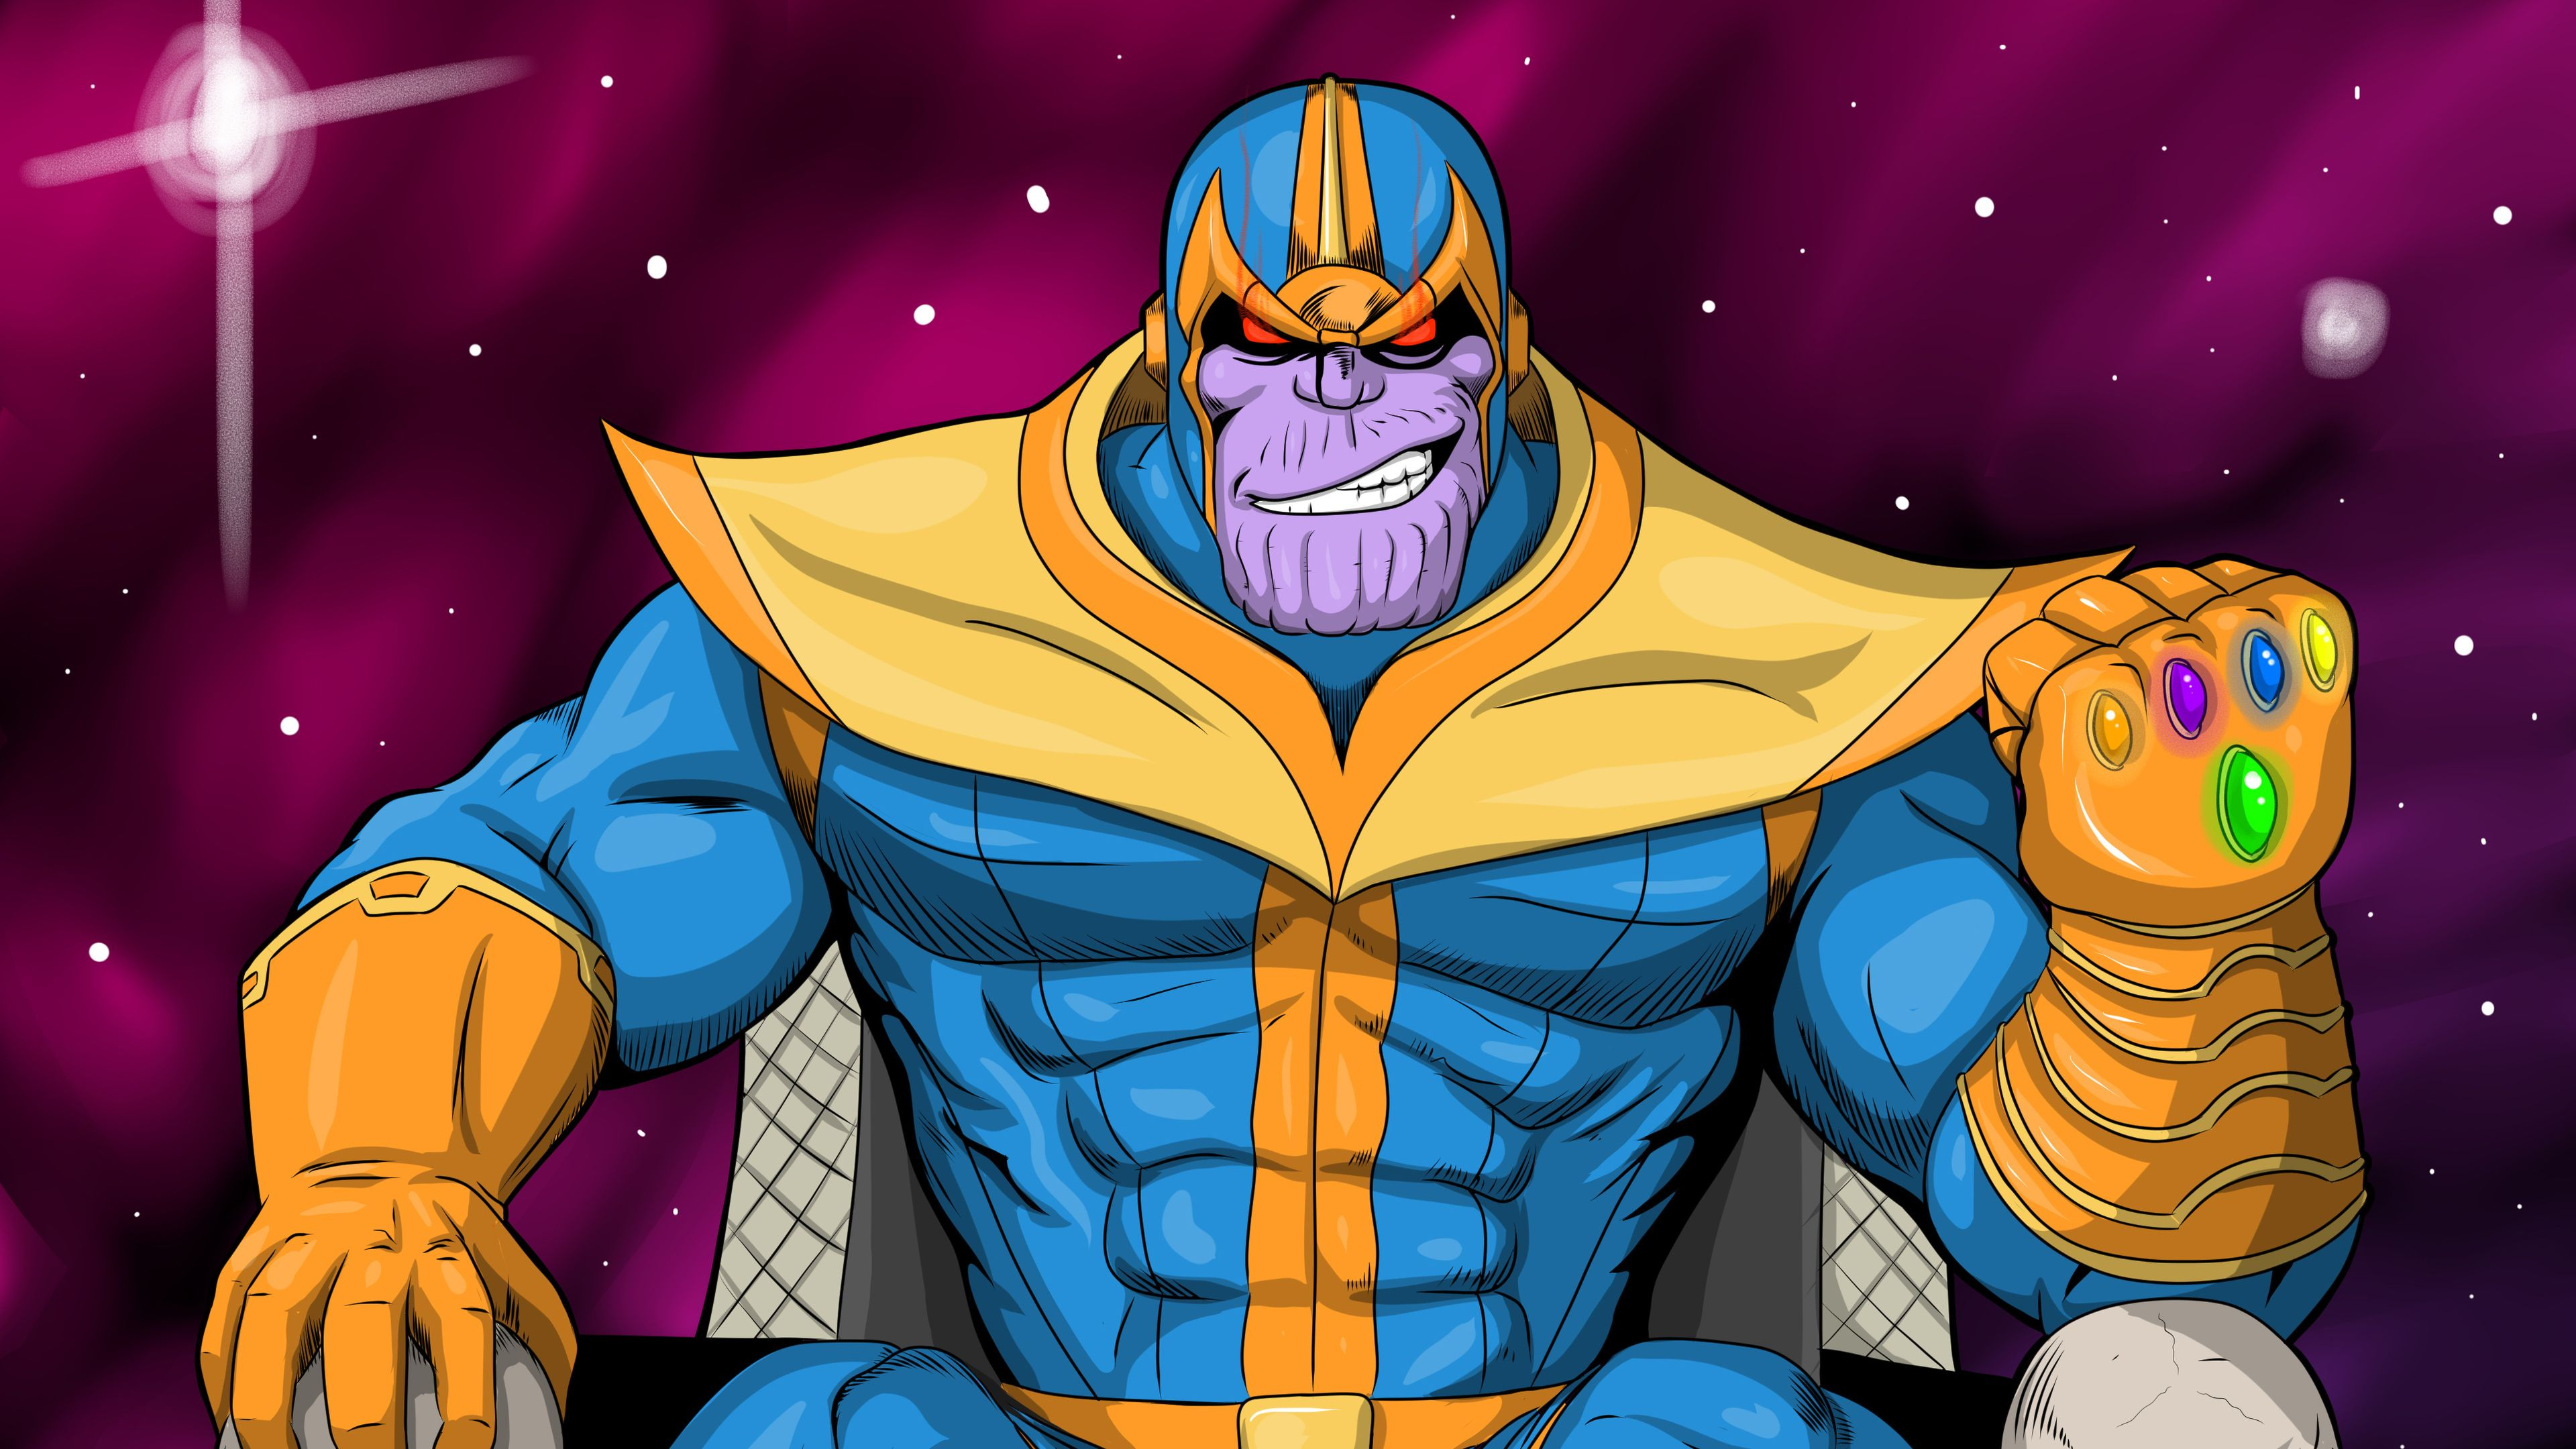 18 Thanos Cartoon Wallpapers On Wallpapersafari